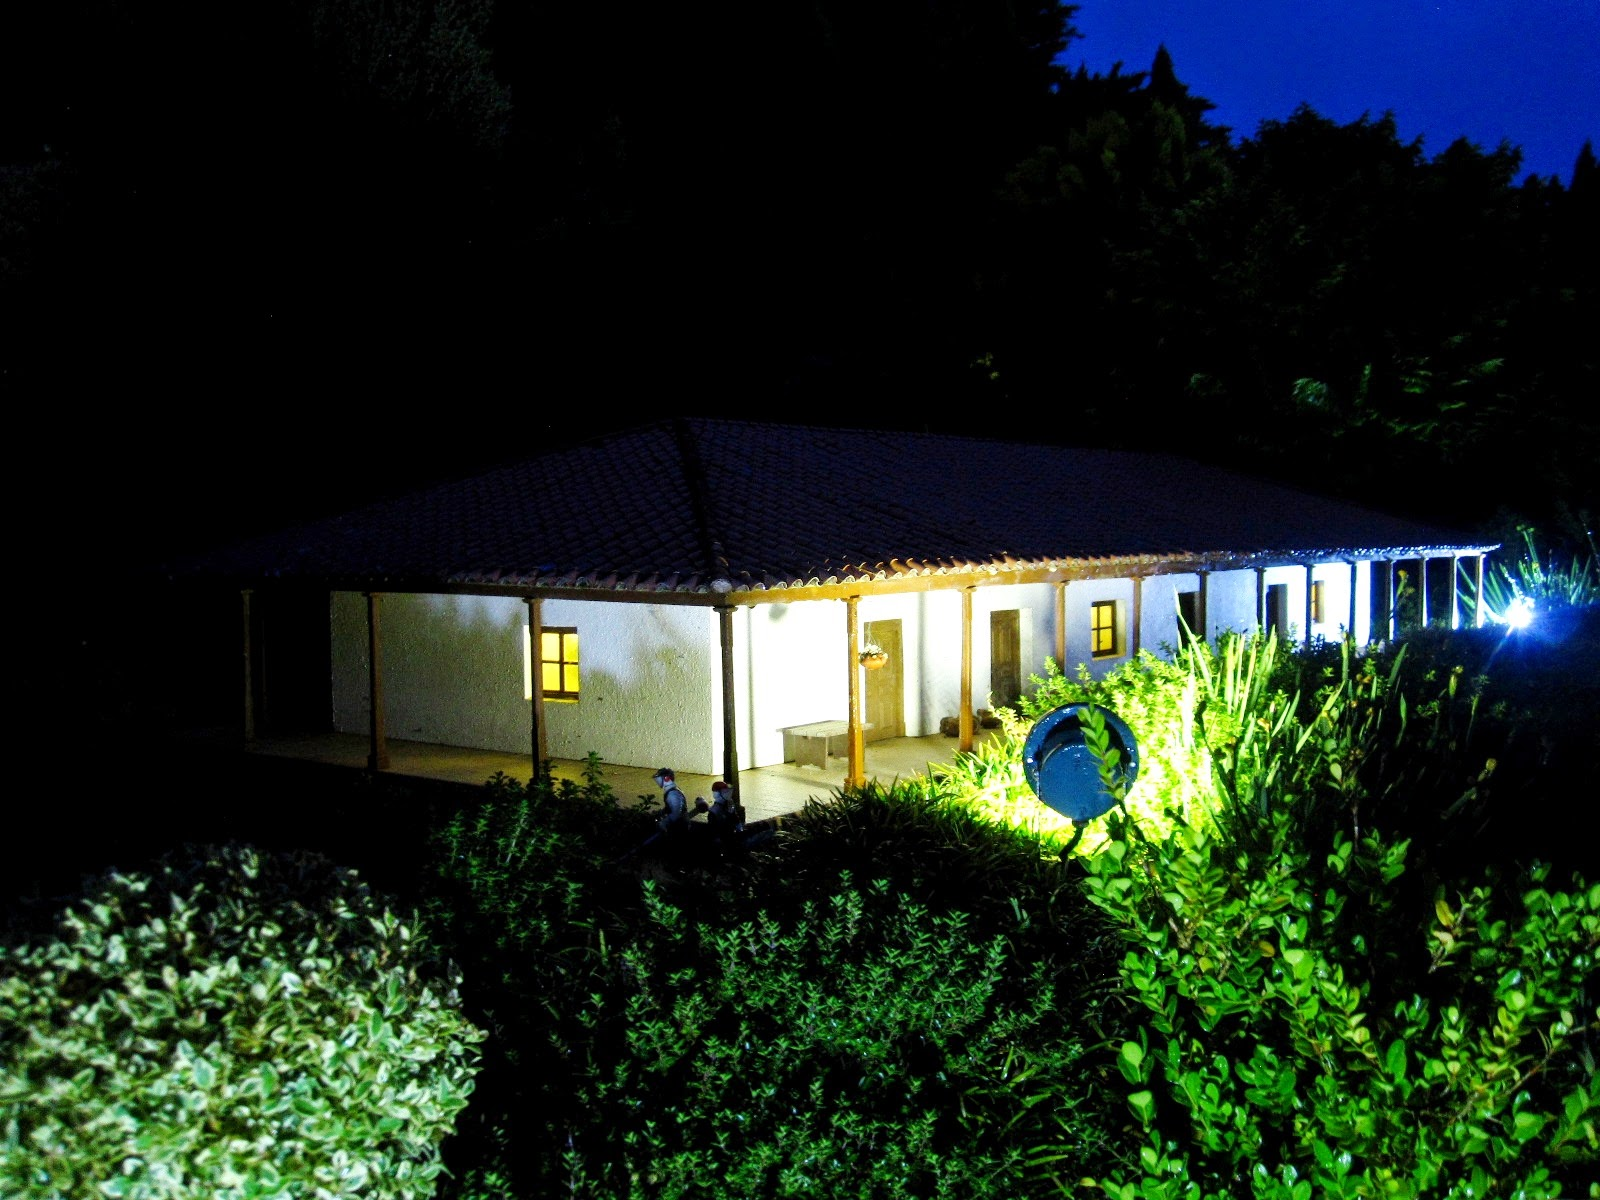 Miniature model of a lit-up building surrounded by bushes, at night.